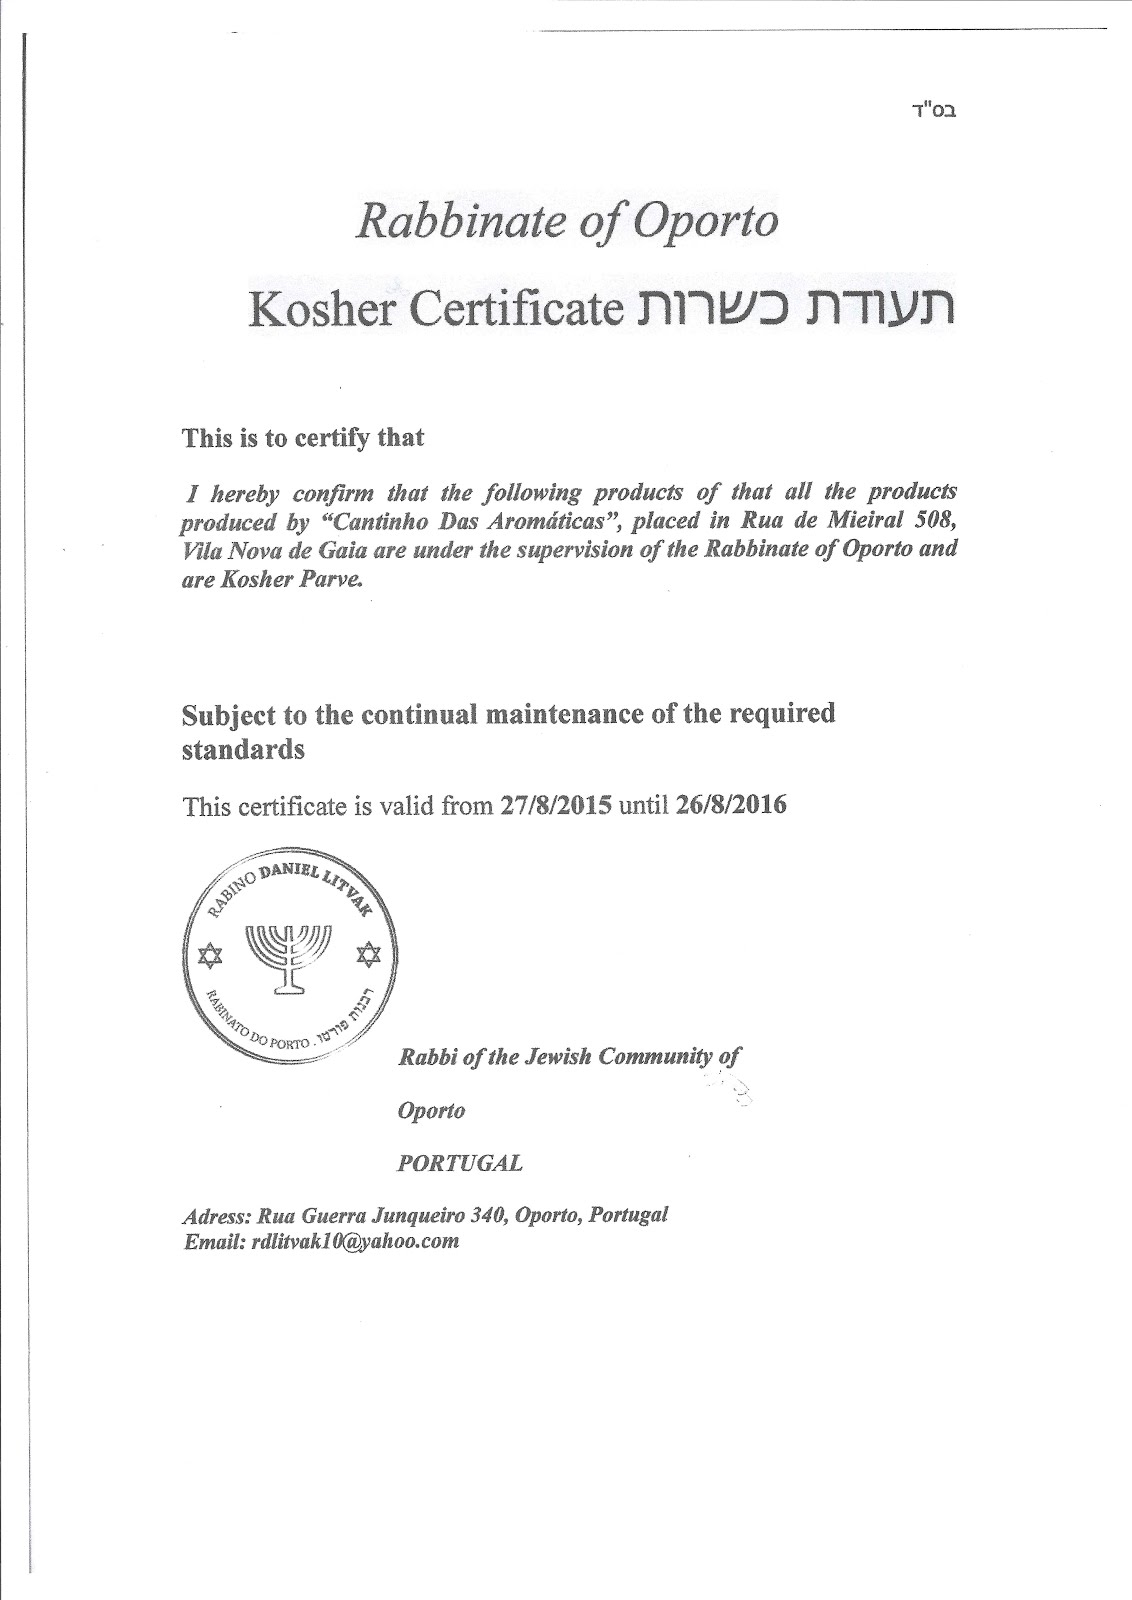 Certificado Kosher 2016